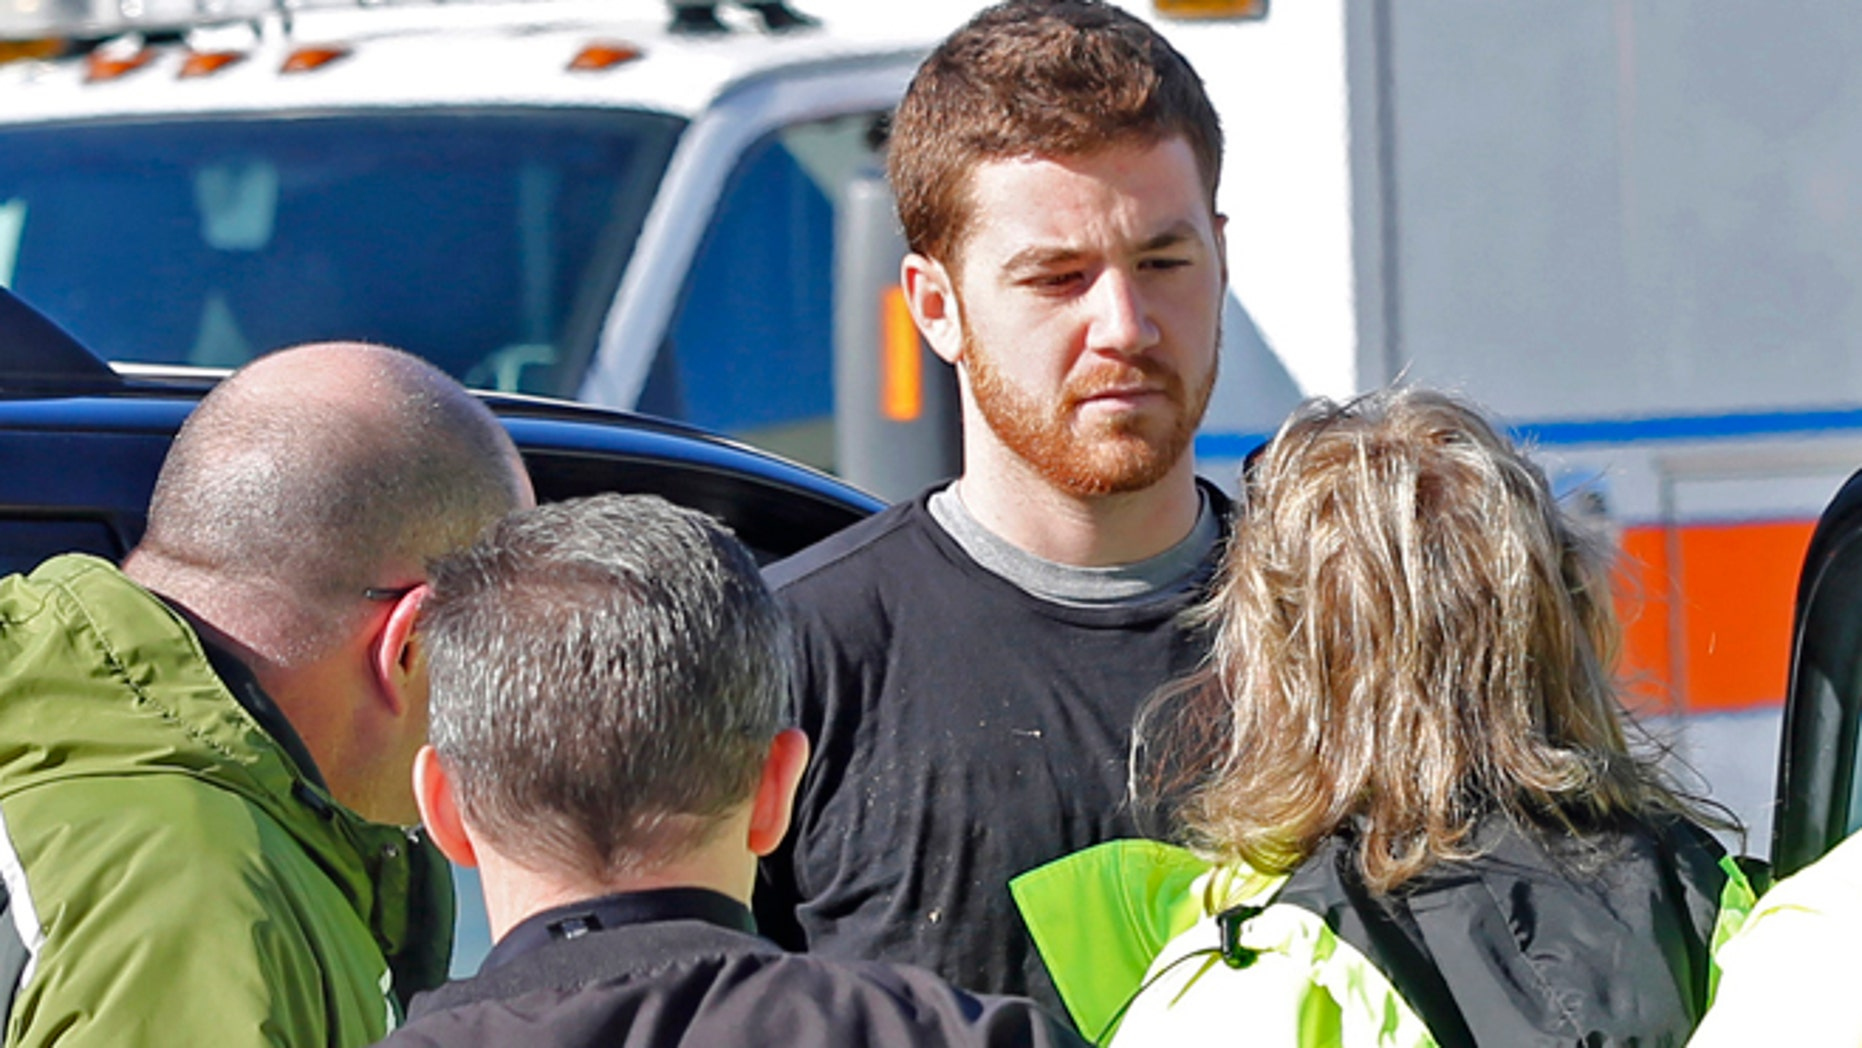 EMS personnel speak with Cody Cousins, 23, who was detained after a shooting inside the Electrical Engineering building on the campus of Purdue University in West Lafayette, Ind.